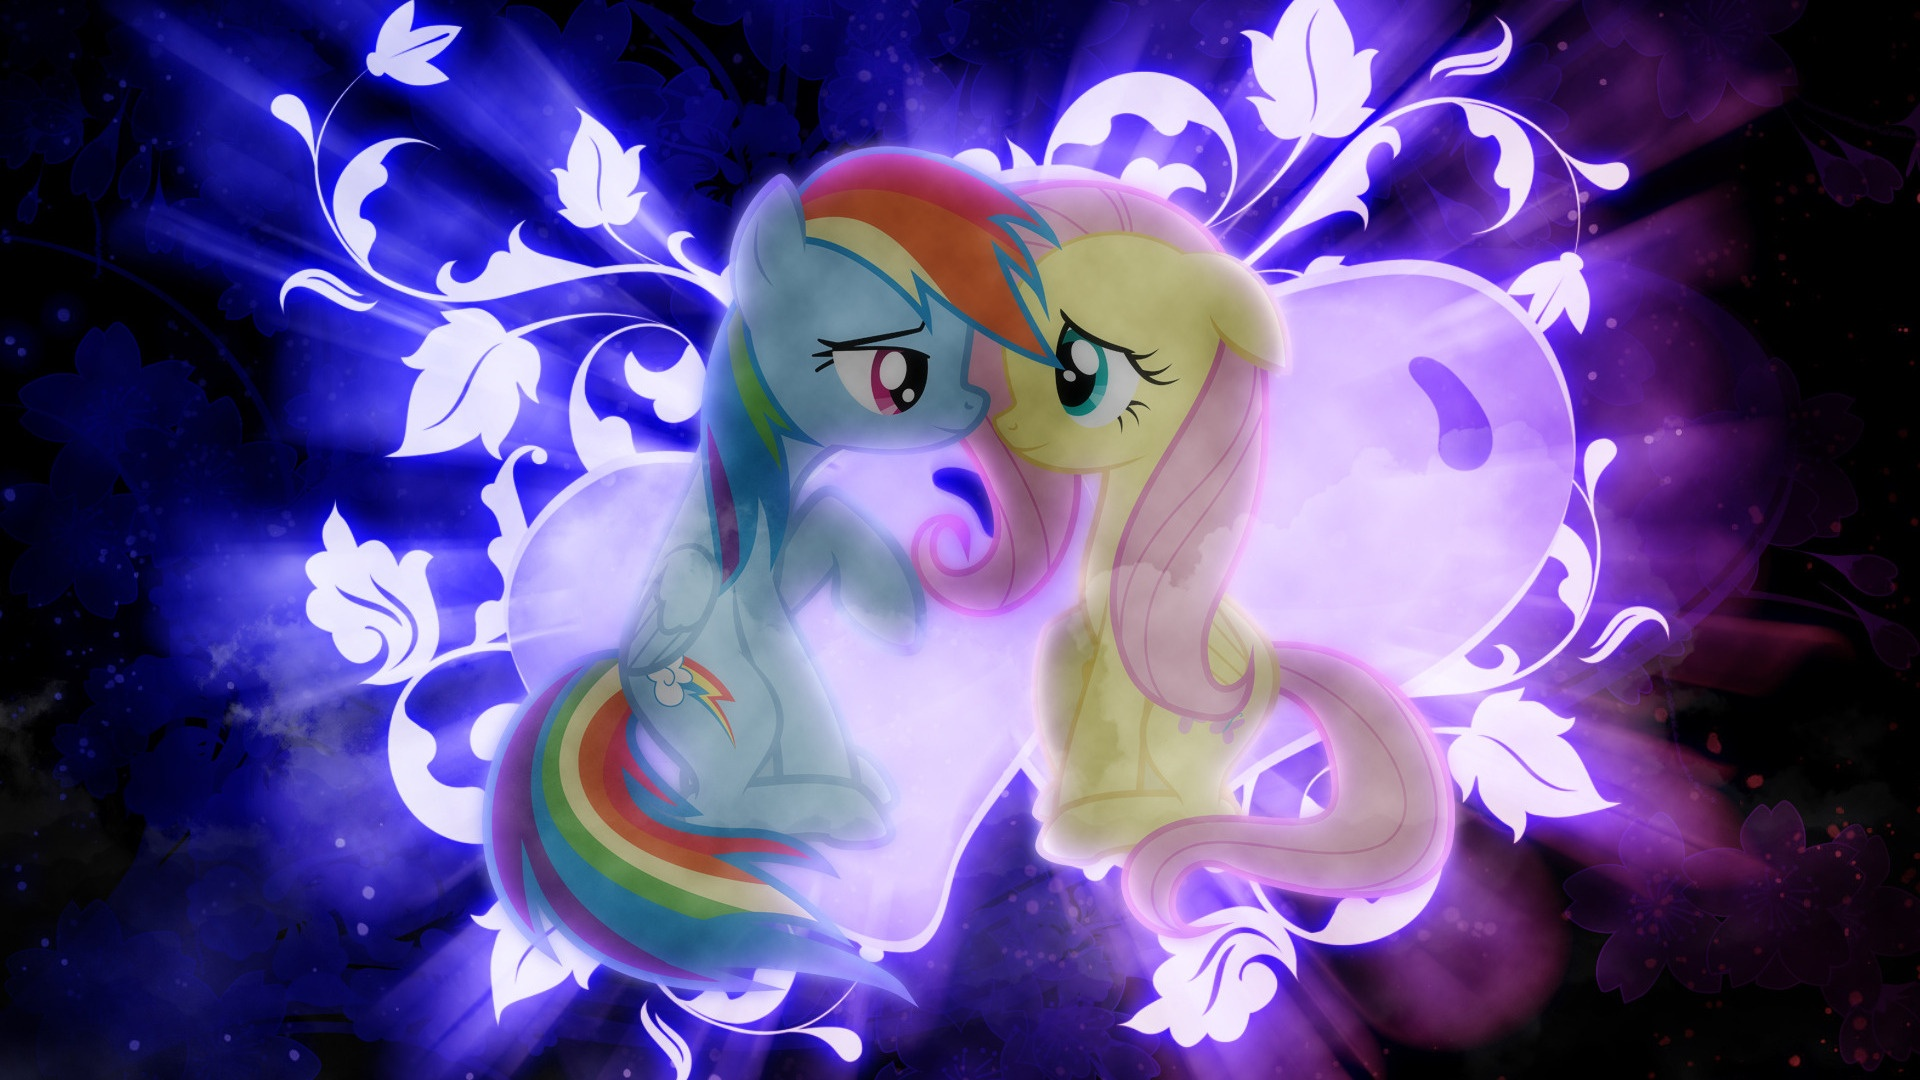 free minecraft coloring pages image 9 likewise  besides  further latest cb 20140301085803 likewise Rainbow Dash vs Fluttershy Cloudsdale Fighting is Magic moreover latest cb 20121129065513 together with airbus a380 lufthansa made for ebay may 09 mb 4 Model as well liv and maddie coloring page as well  further latest cb 20130303110750 as well . on minecraft full coloring pages